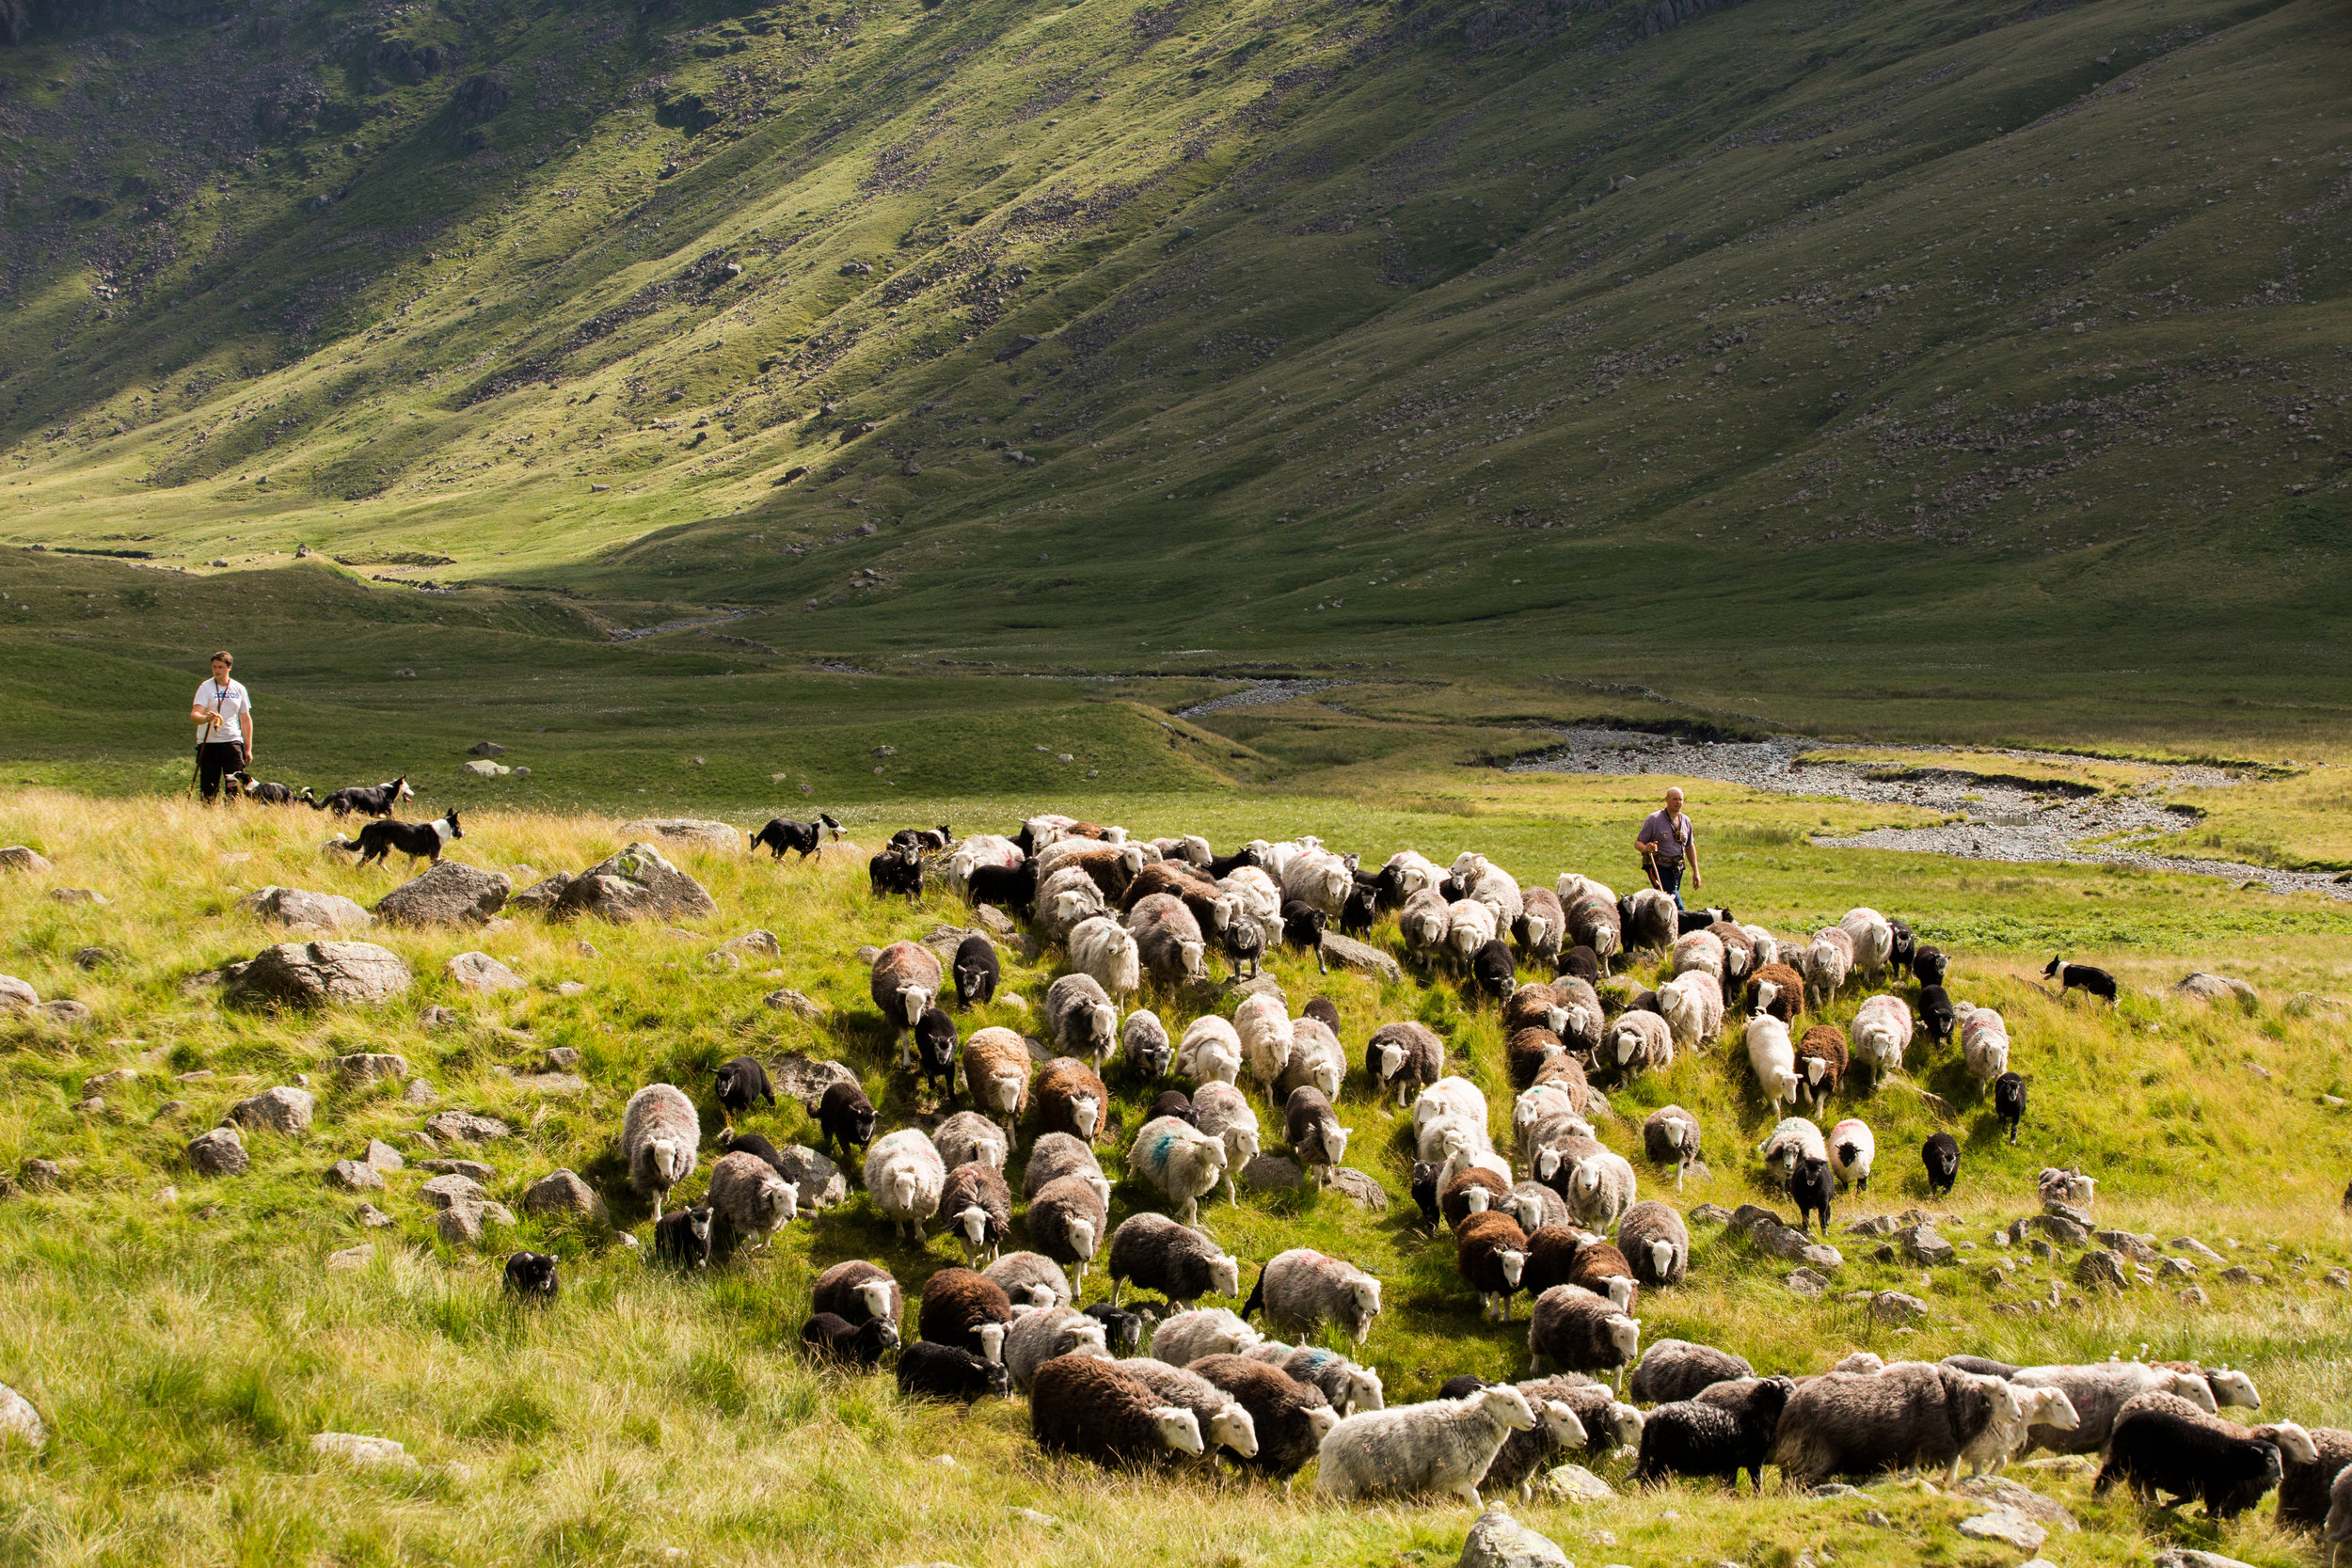 Here you can see the Herdwick sheep from the Lake District fells being gathered in time for sheering.